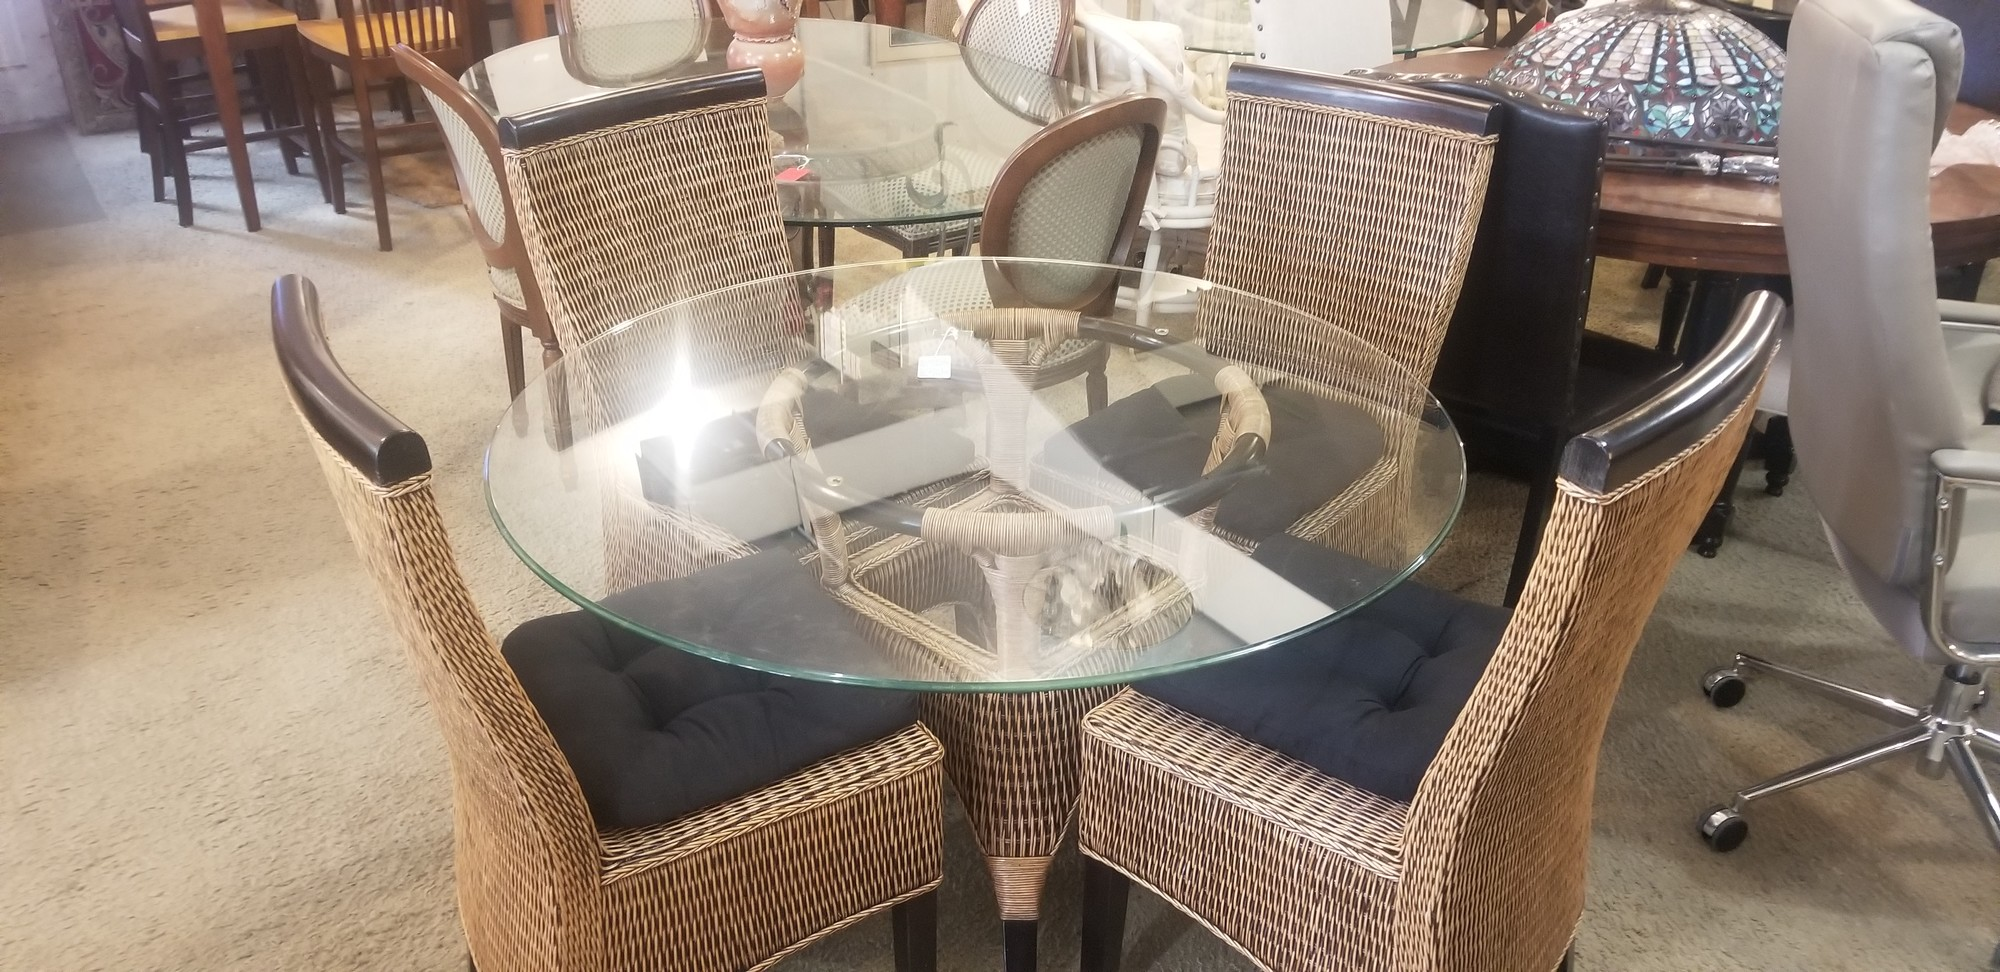 GLASS/WICKER DINING TABLE, None, Size: None